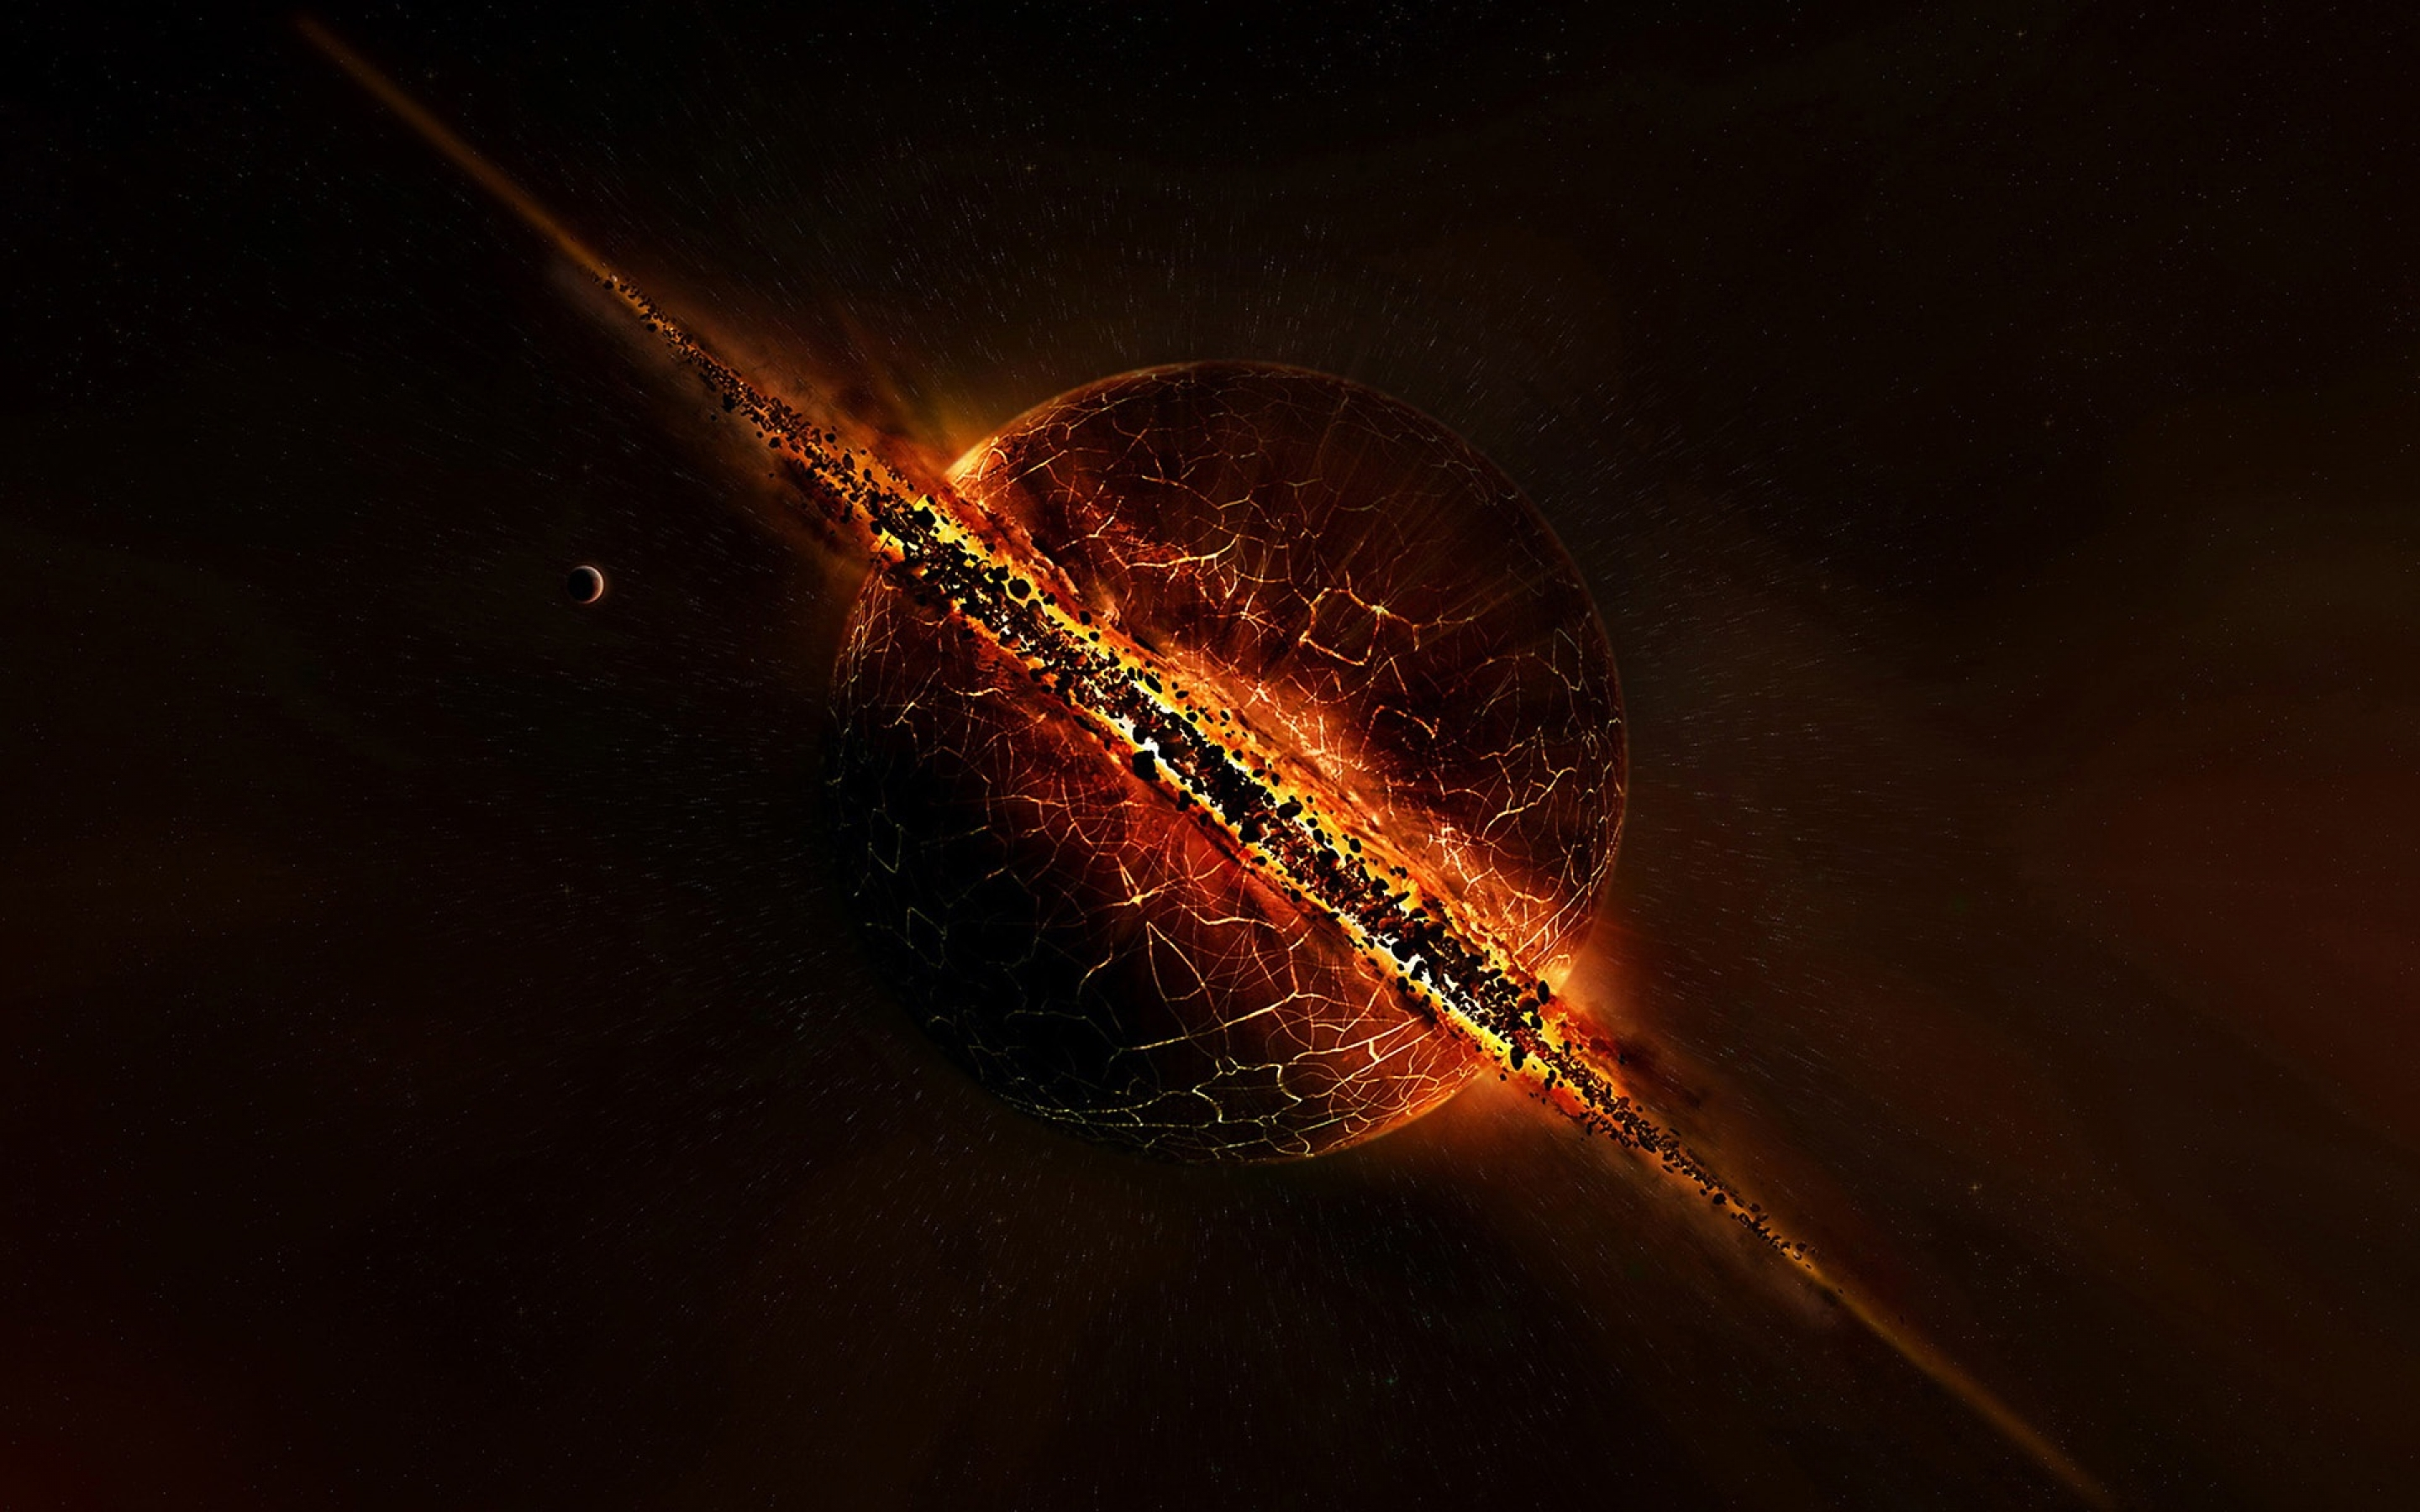 Exploding planets wallpaper   2880x1800   3829   WallpaperUP